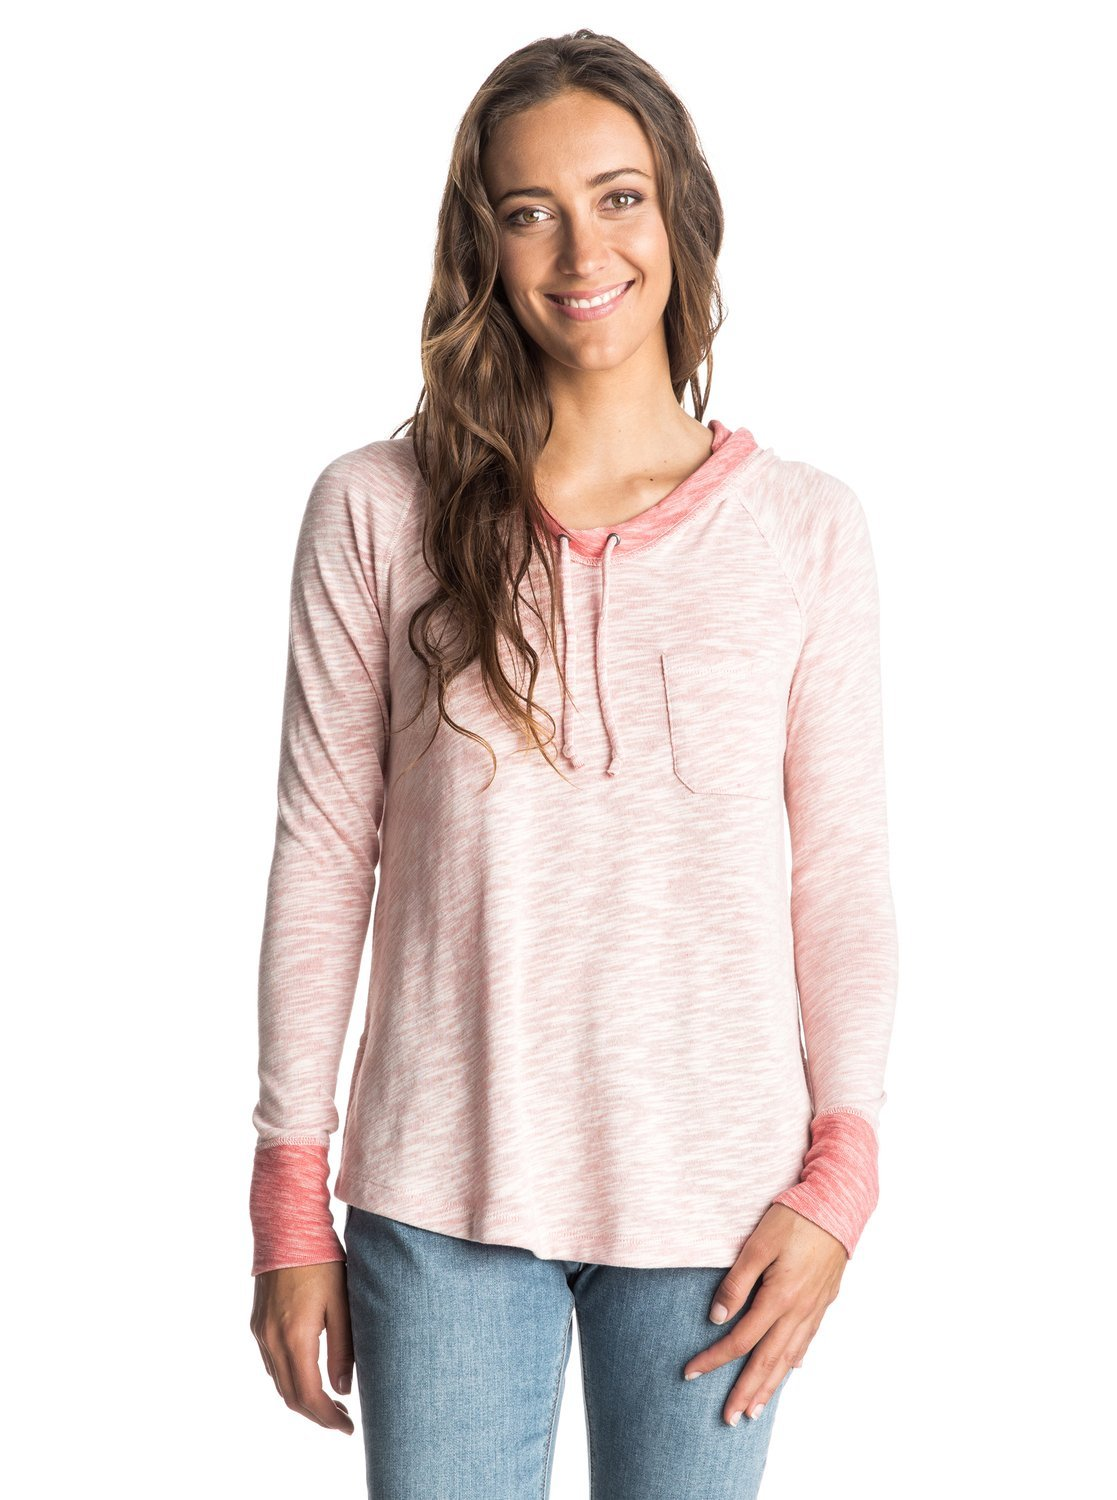 Roxy Hooded Sudadera Boomerang Love Long Sleeve Top Rosa Faded Rose - Solid Talla:M: Quiksilver: Amazon.es: Deportes y aire libre